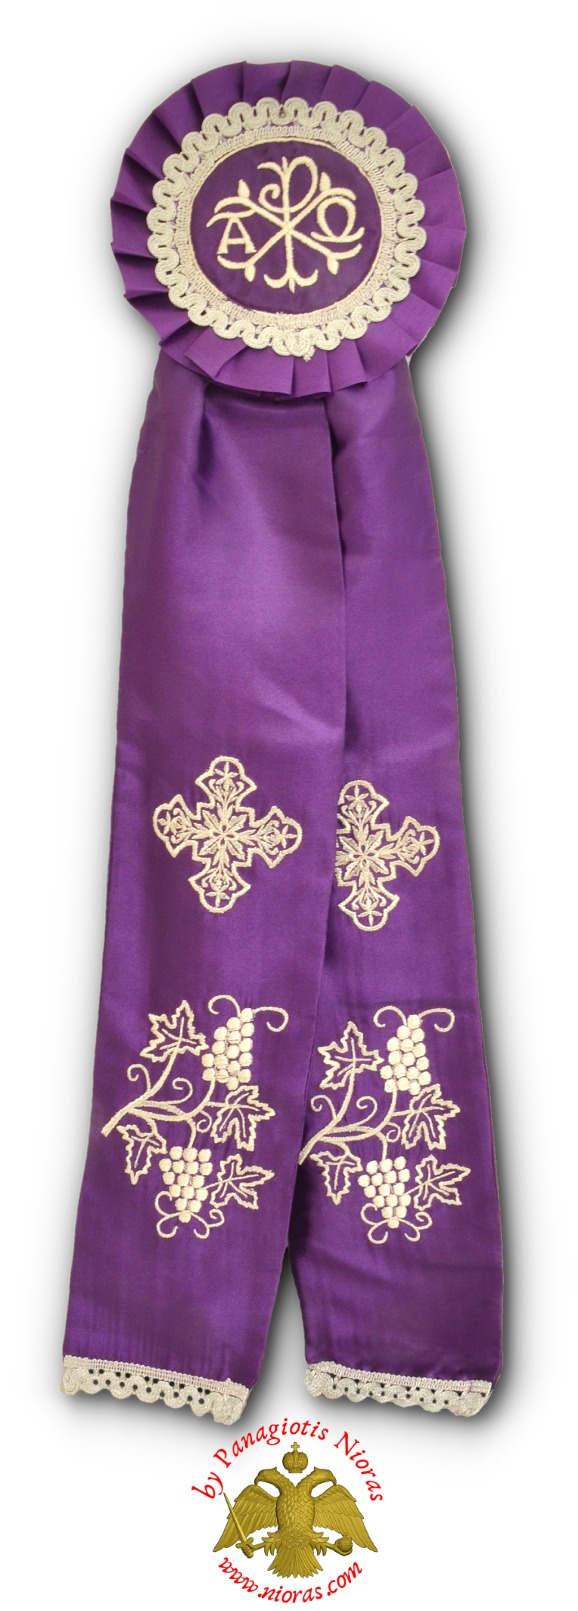 Ecclesiastical Ribbon Badge for Church Decoration 17x60cm Purple